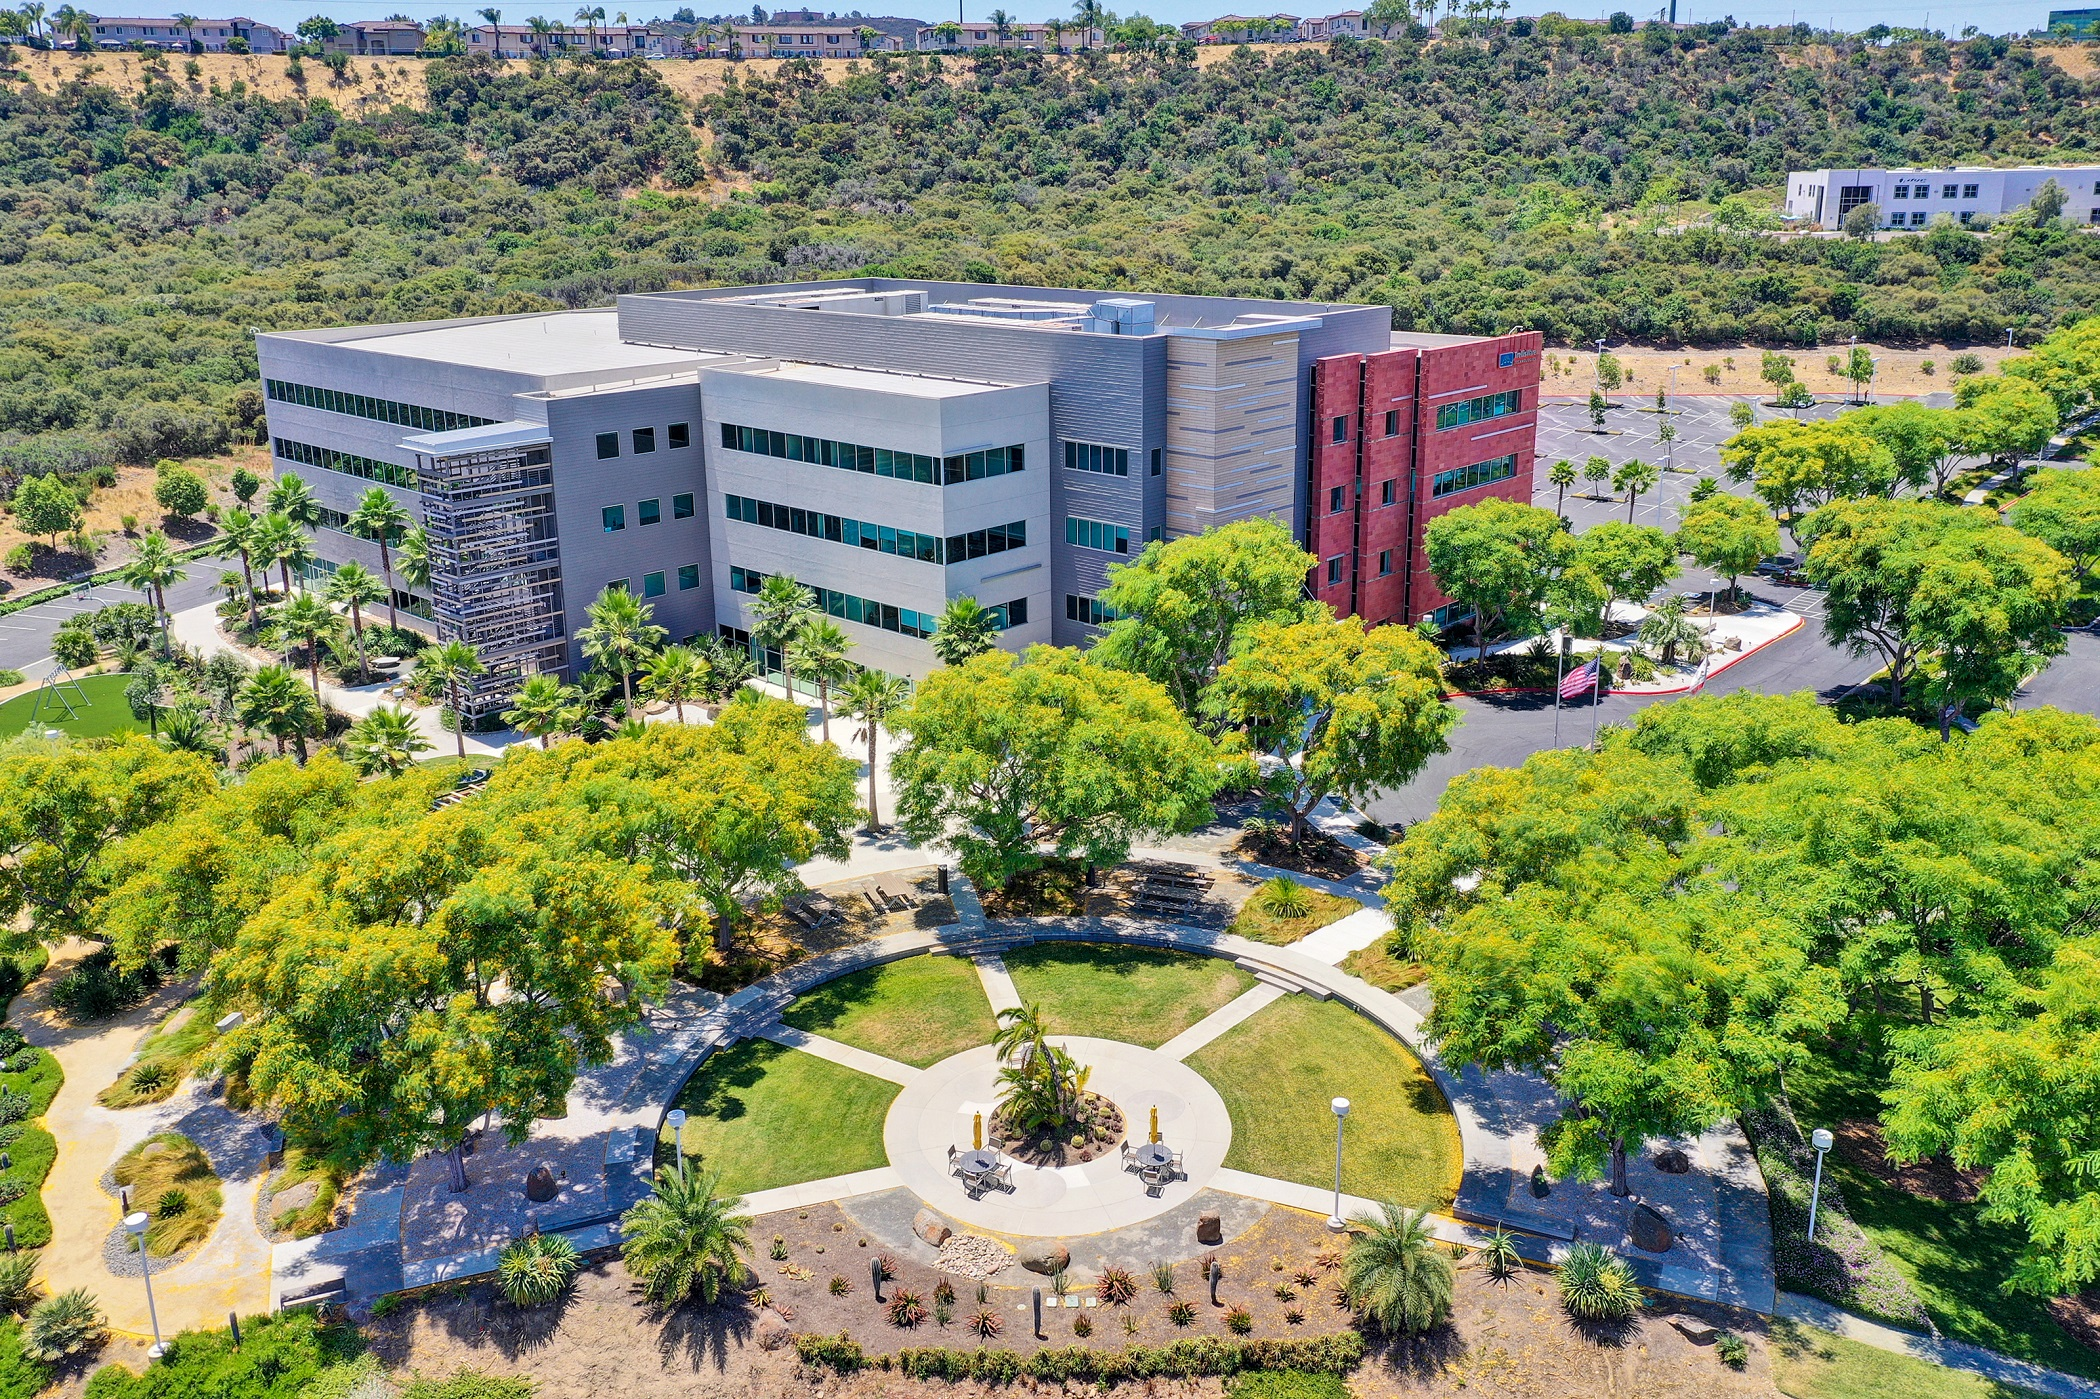 Sabre Springs Offices Sell for $68M, with Almost Half of Site Available for Development - Times of San Diego